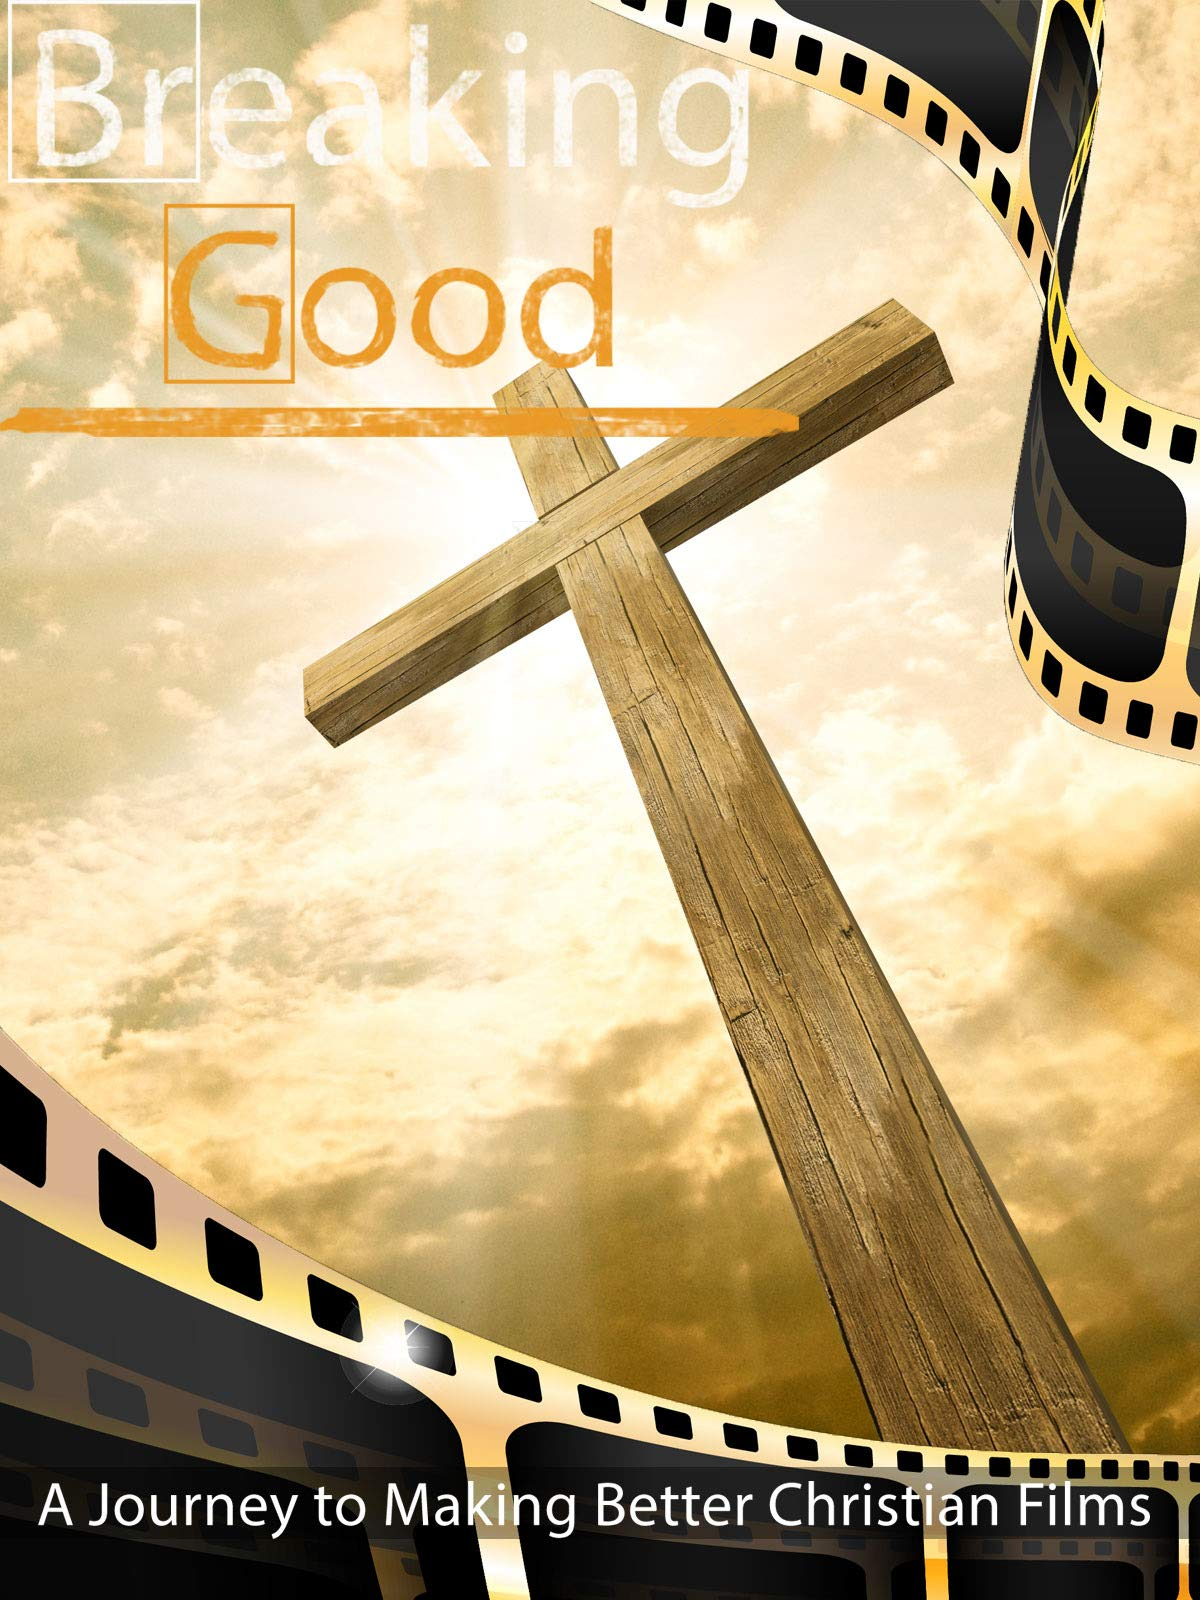 Breaking Good: A Journey to Making Better Christian Films